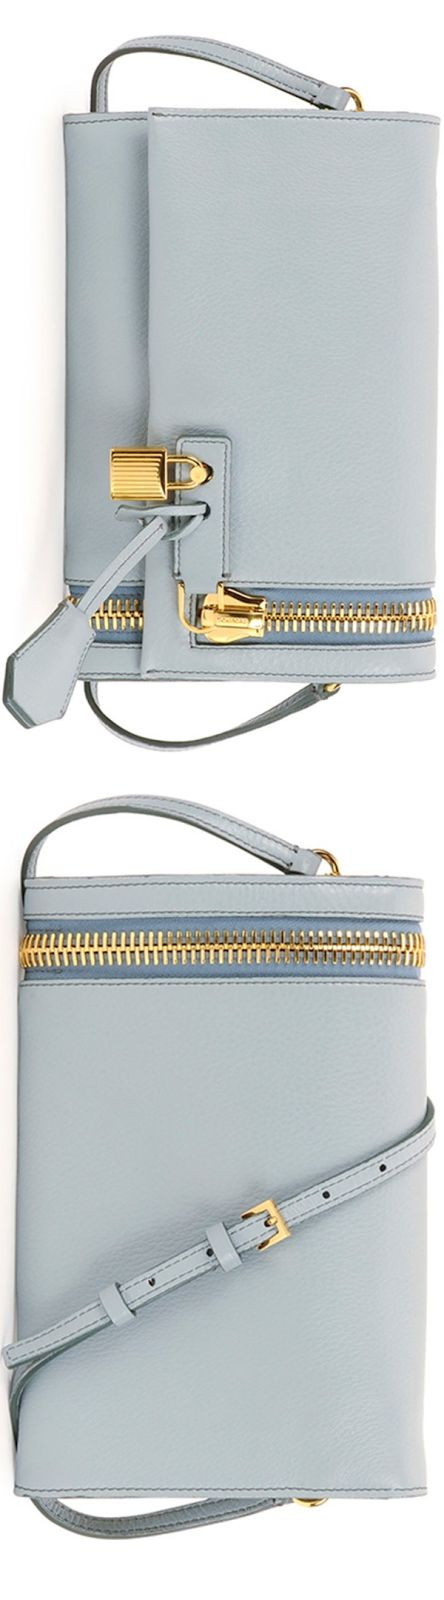 Tom Ford Alix Small Zip & Padlock Crossbody Bag, Light Blue  LOOKandLOVEwithLOLO